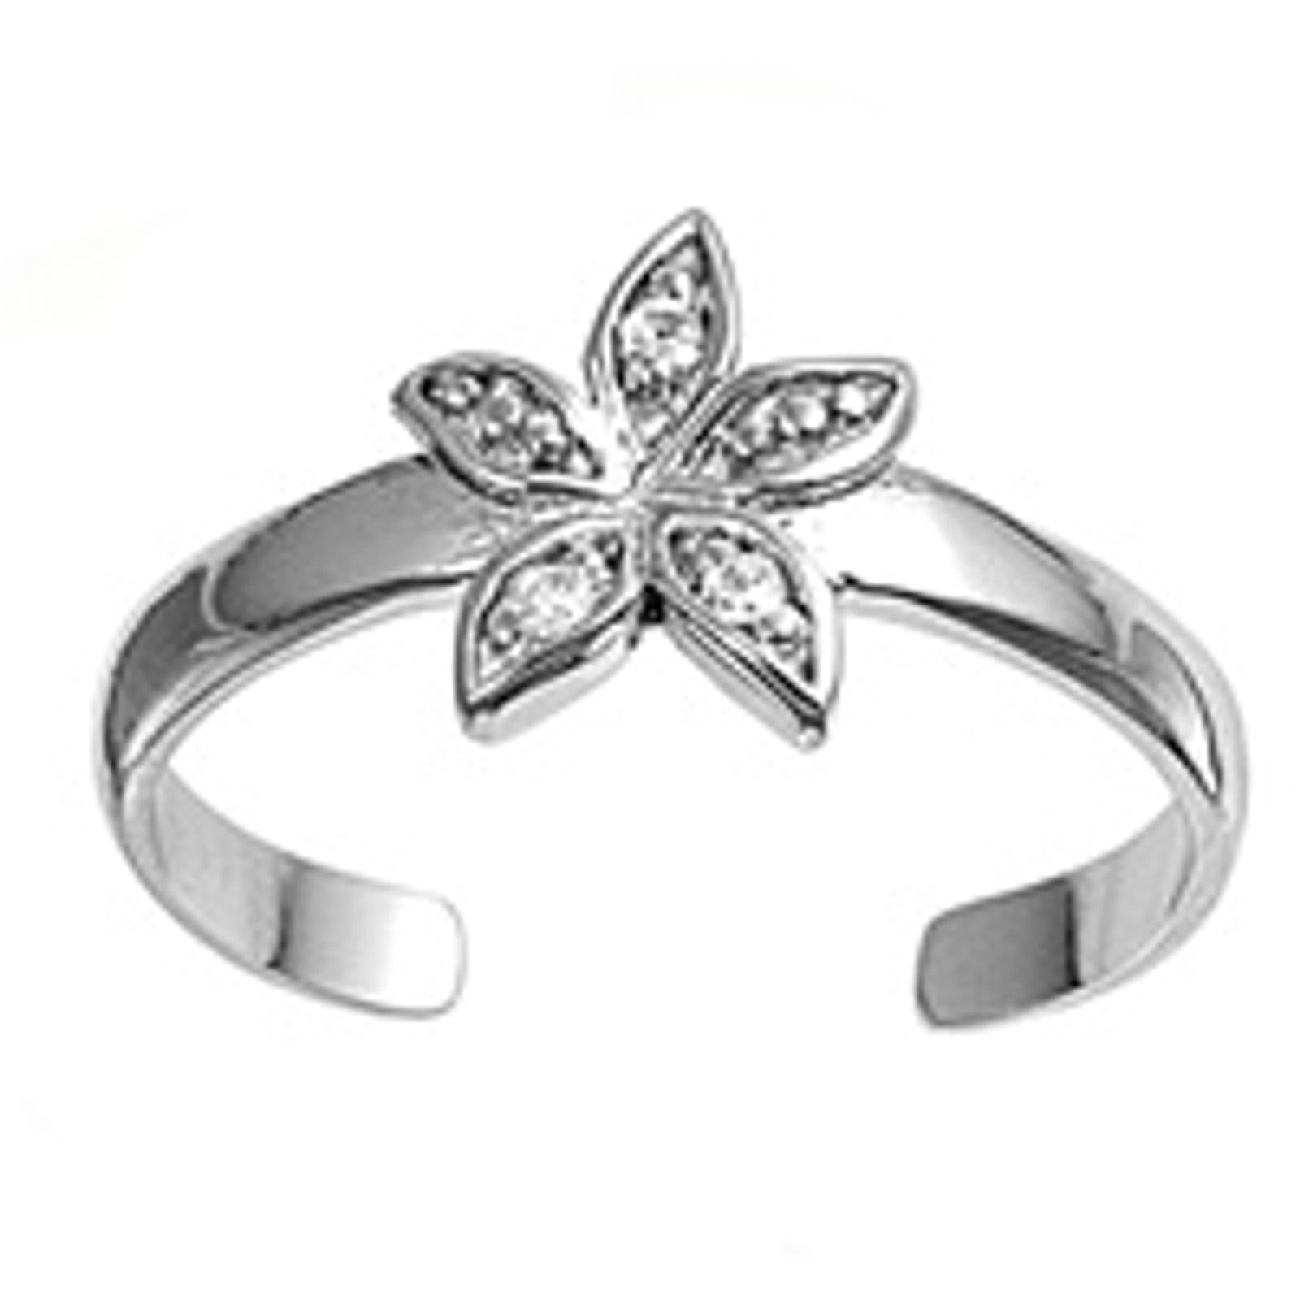 Clear Cubic Zirconia Starfish Or Flower Adjustable Toe Ring